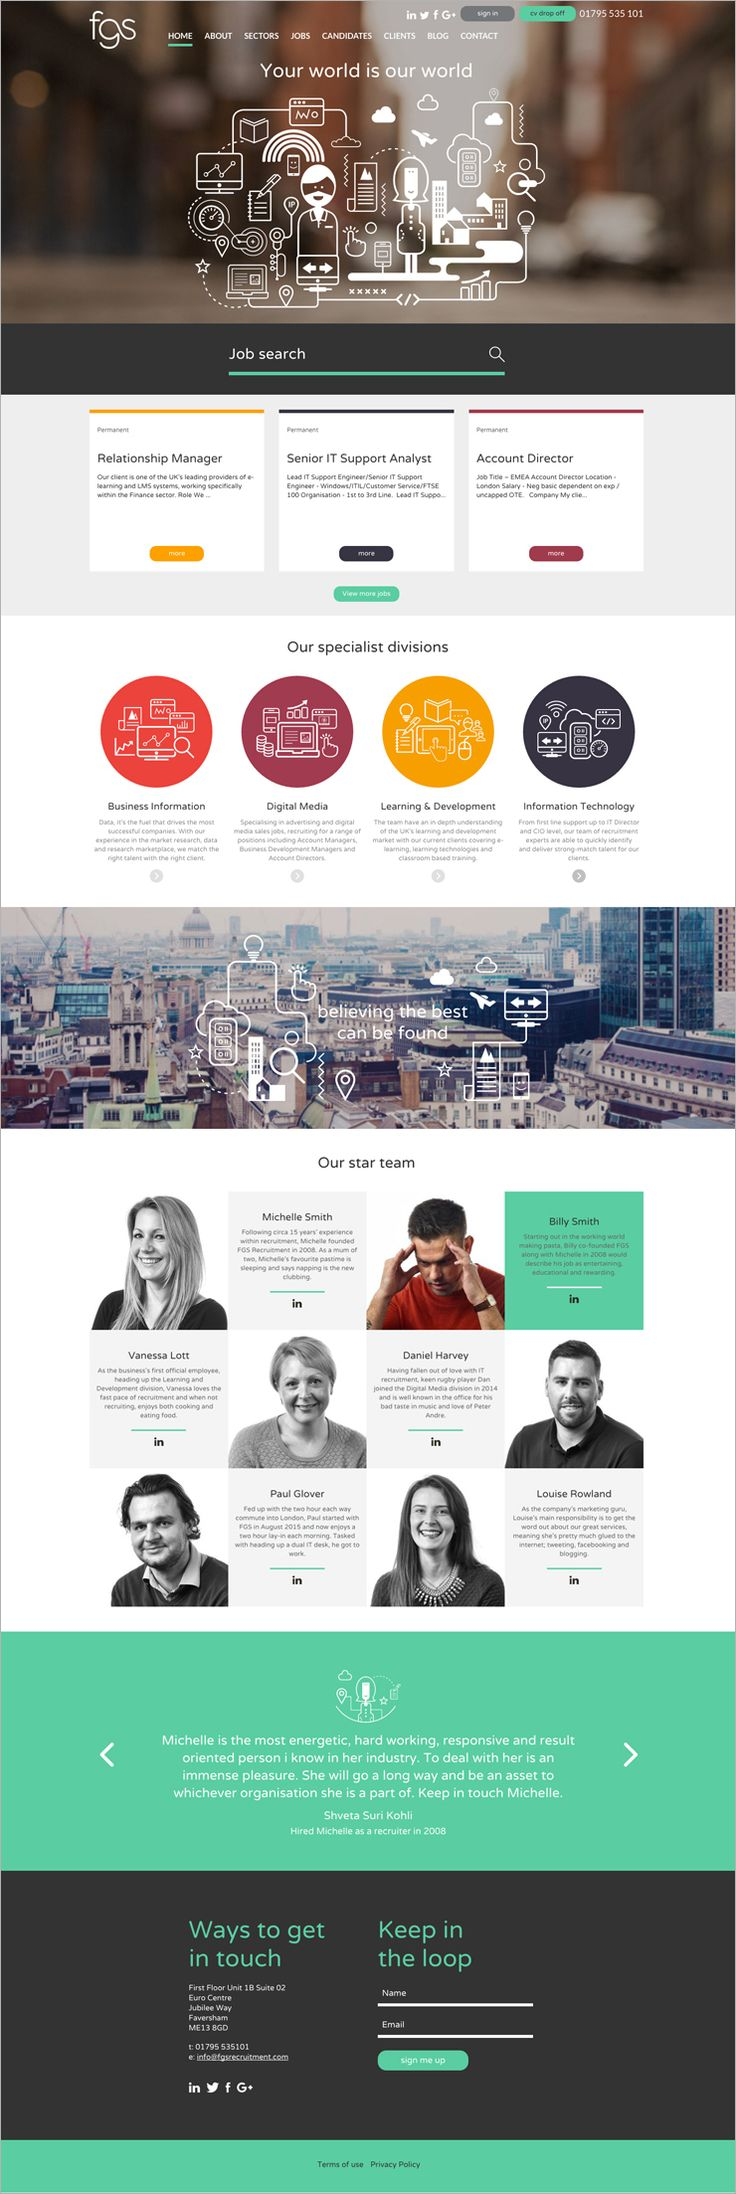 Website About Us Page Template 7464162 Hitori49fo